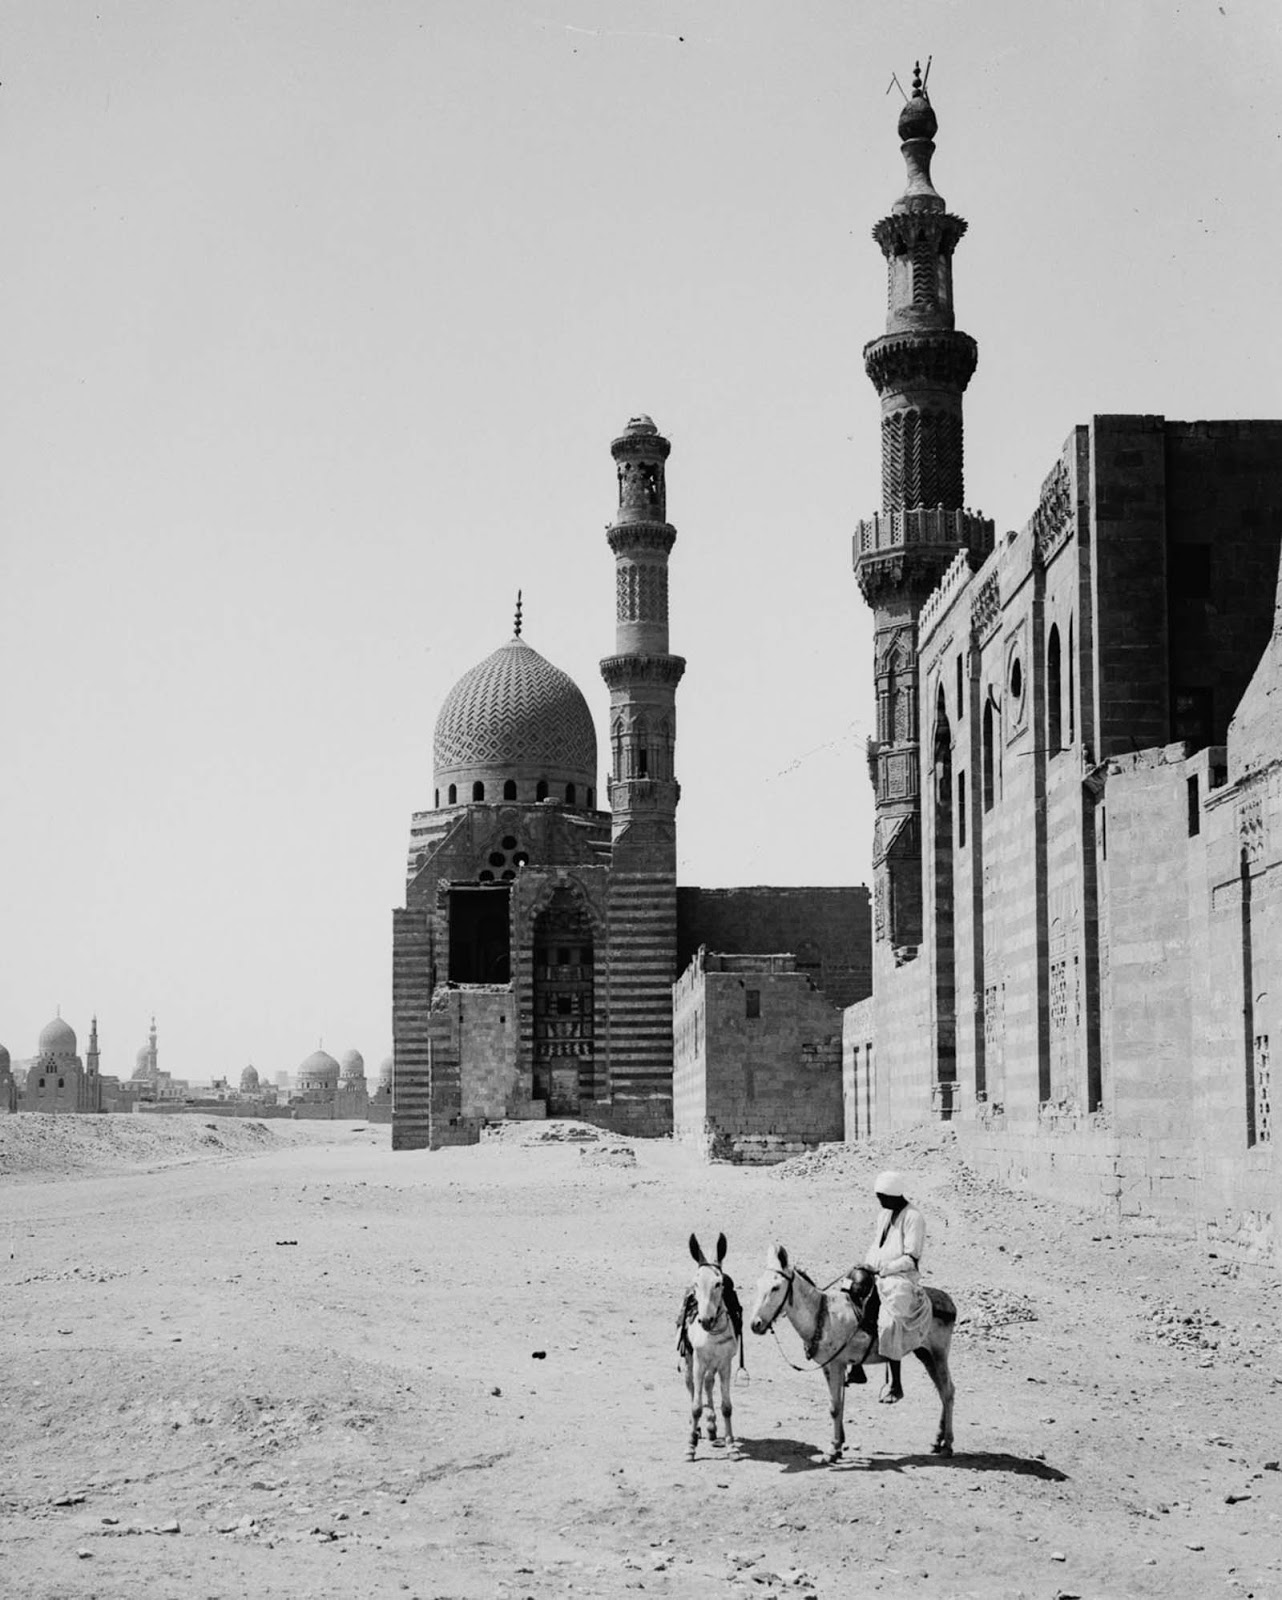 The tomb-mosque of Sultan el-Ashraf. 1900.